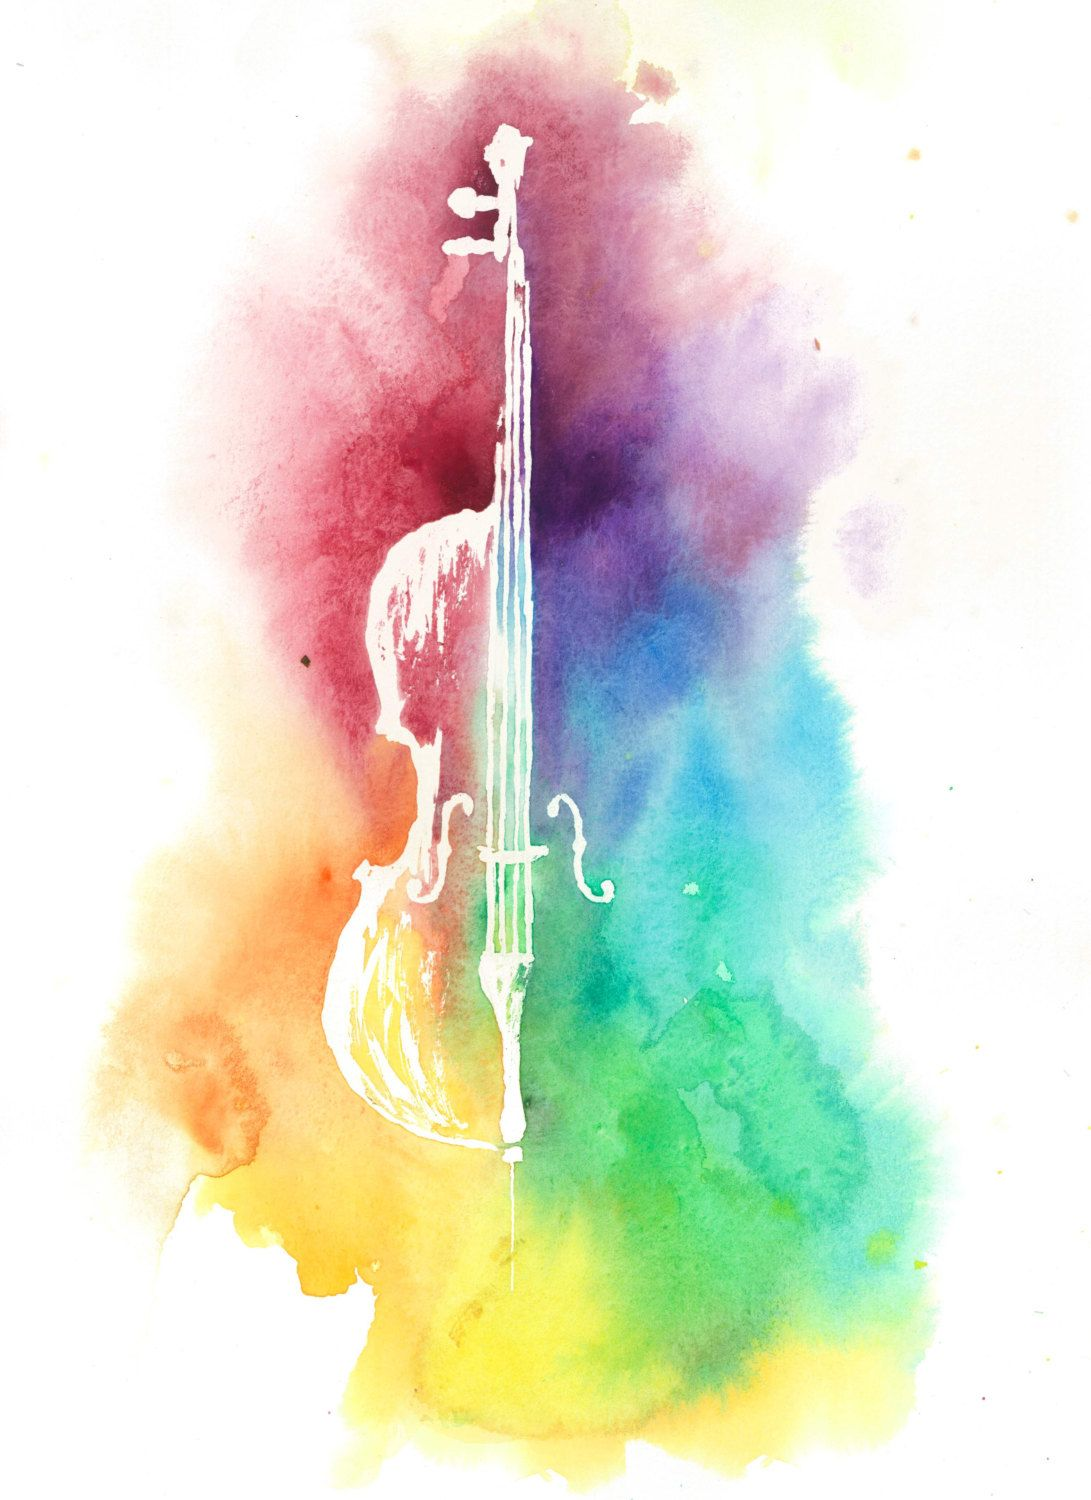 Great Wallpaper Music Watercolor - c66fc1023676dfdd4bd4990b481e75ca  Pic_705975.jpg